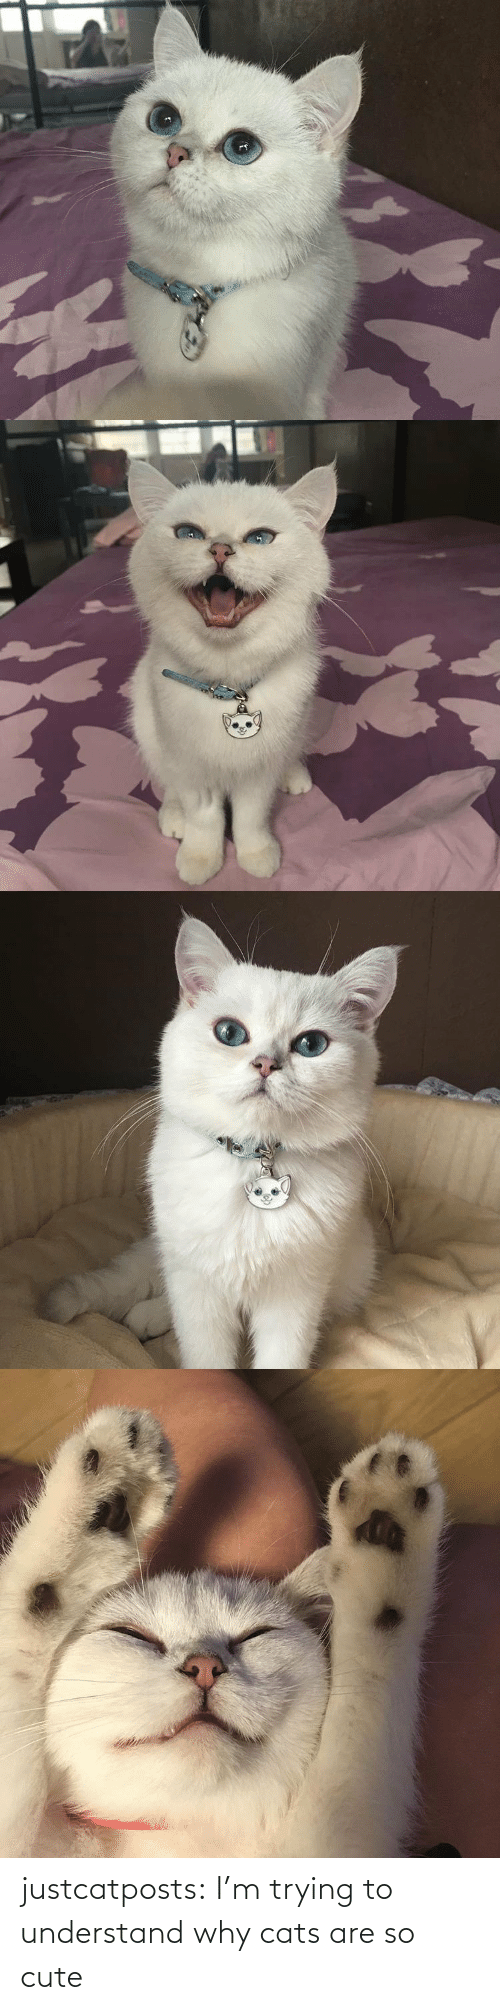 Cats: justcatposts:  I'm trying to understand why cats are so cute